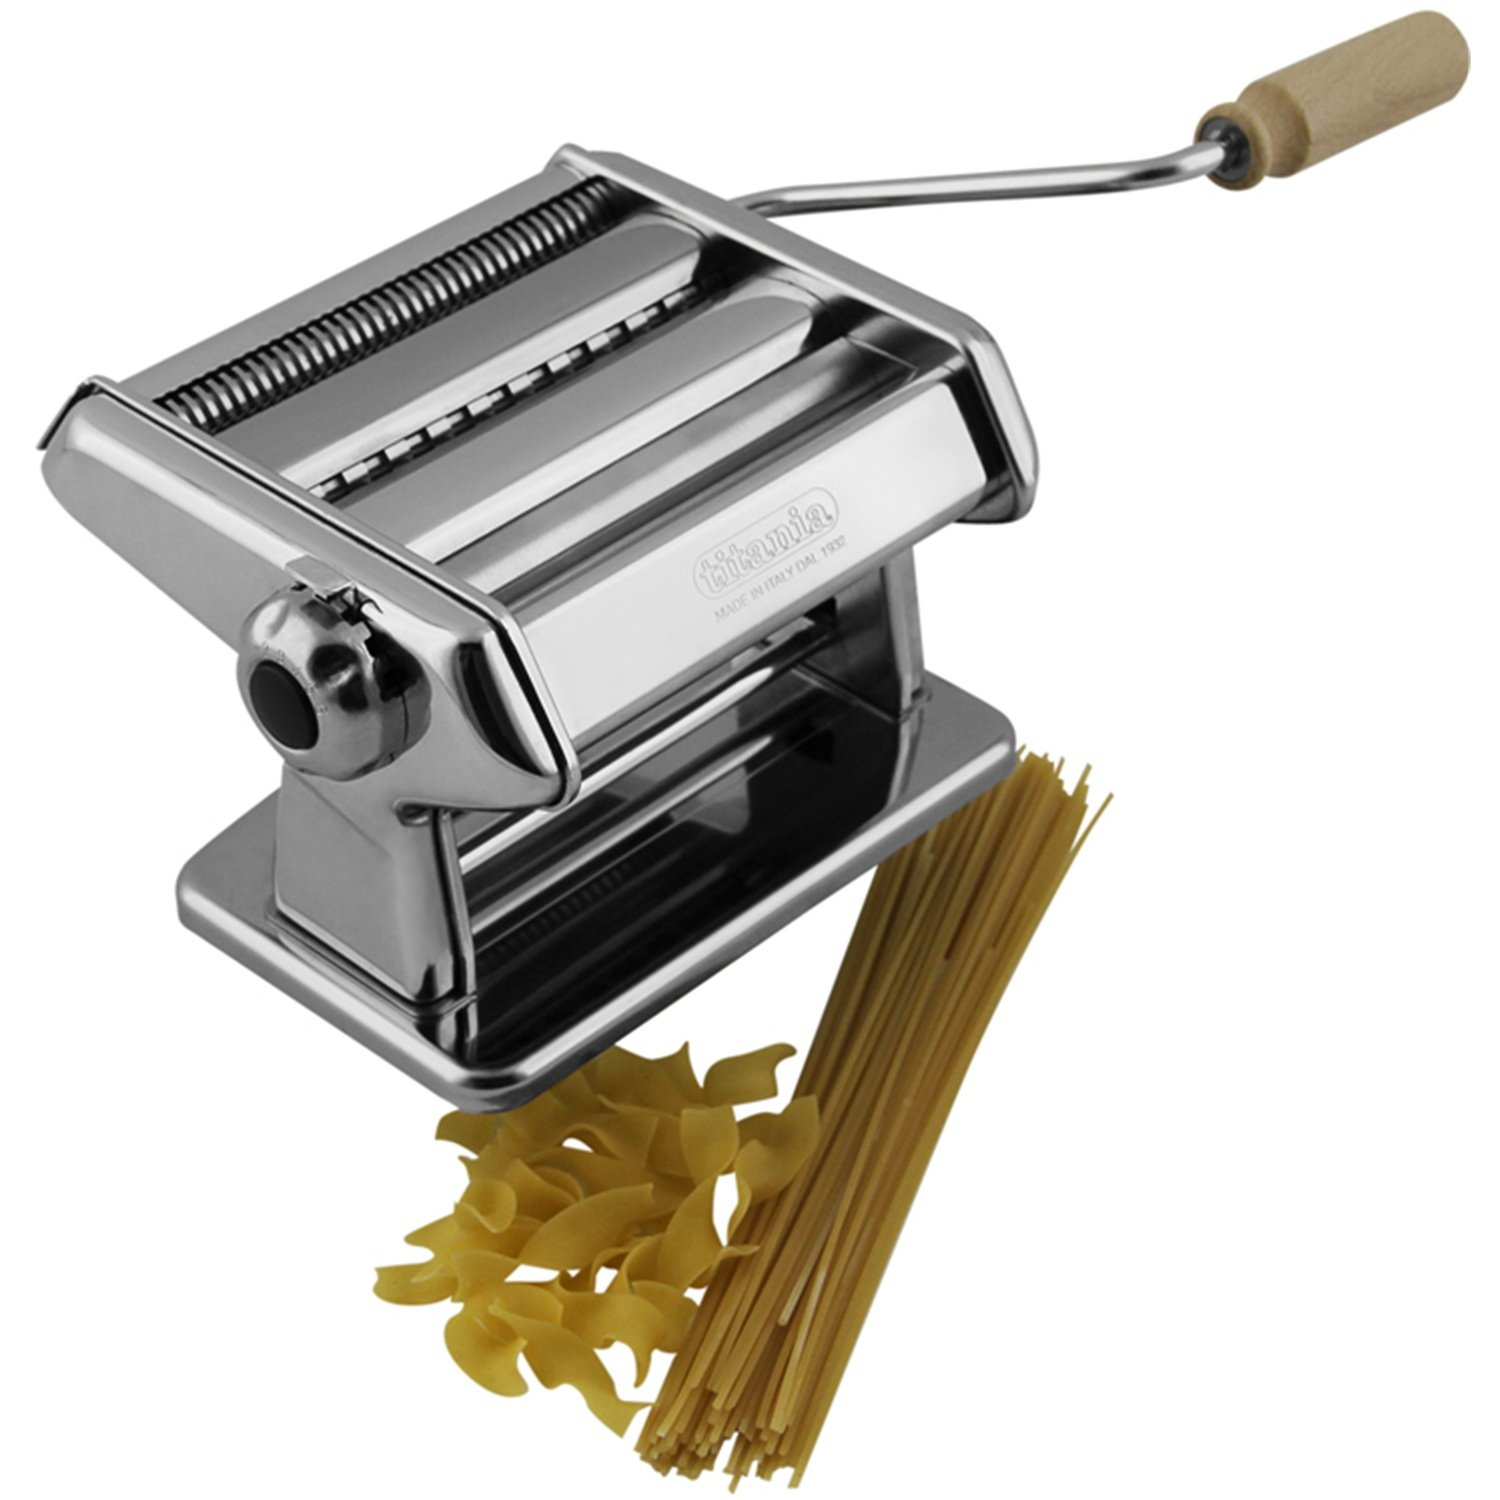 CucinaPro 190 Pasta Maker Machine, Large, Stainless by CucinaPro